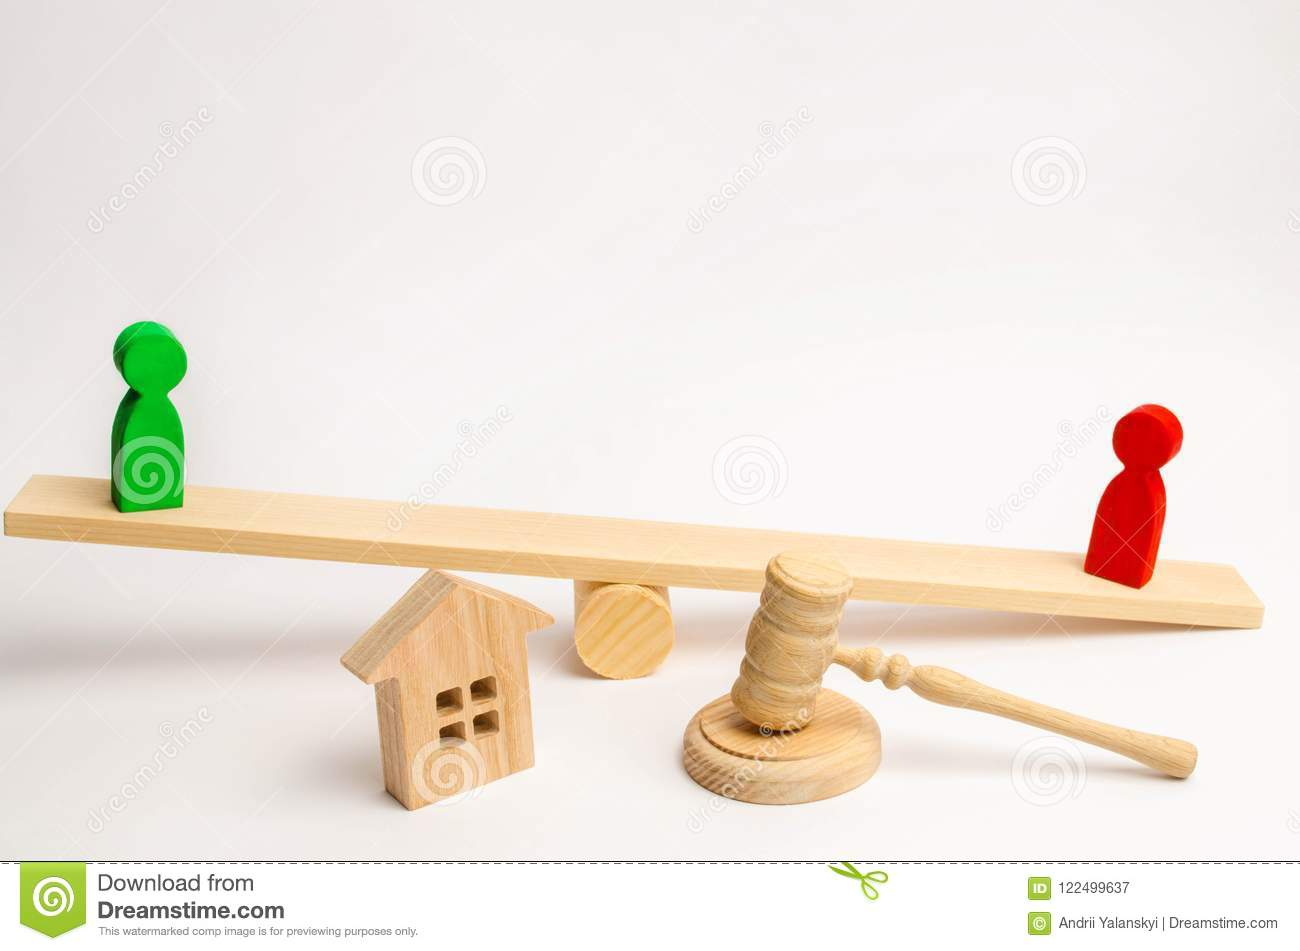 Clarification of ownership of the house. wooden figures of people. rivals in business stand on the scales. competitio, trial, conf